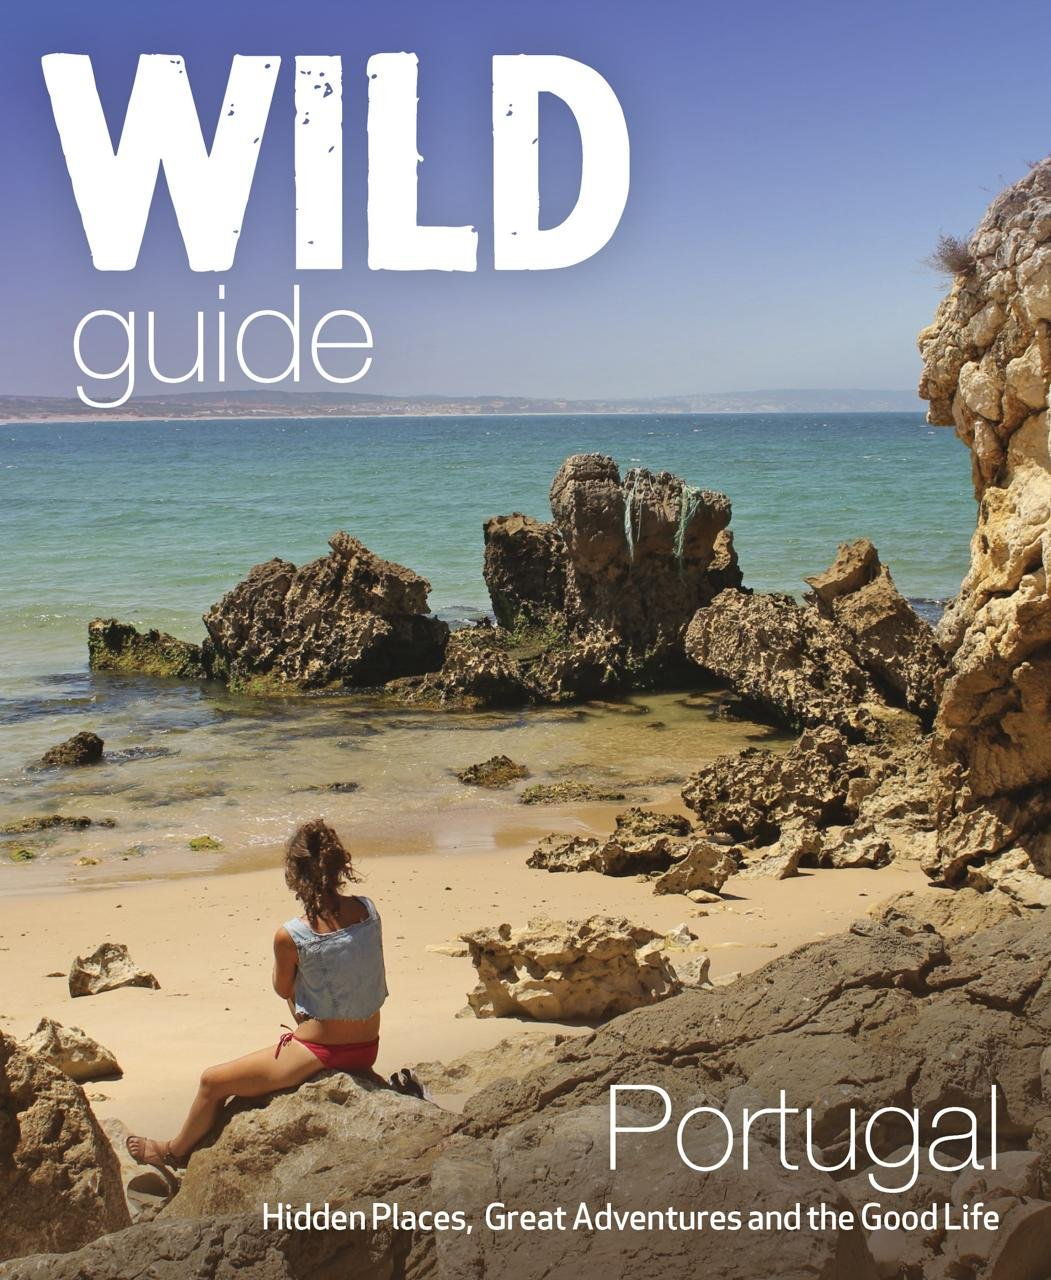 Wild Guide Portugal: Hidden places, great adventures & the good life (Wild Guides)